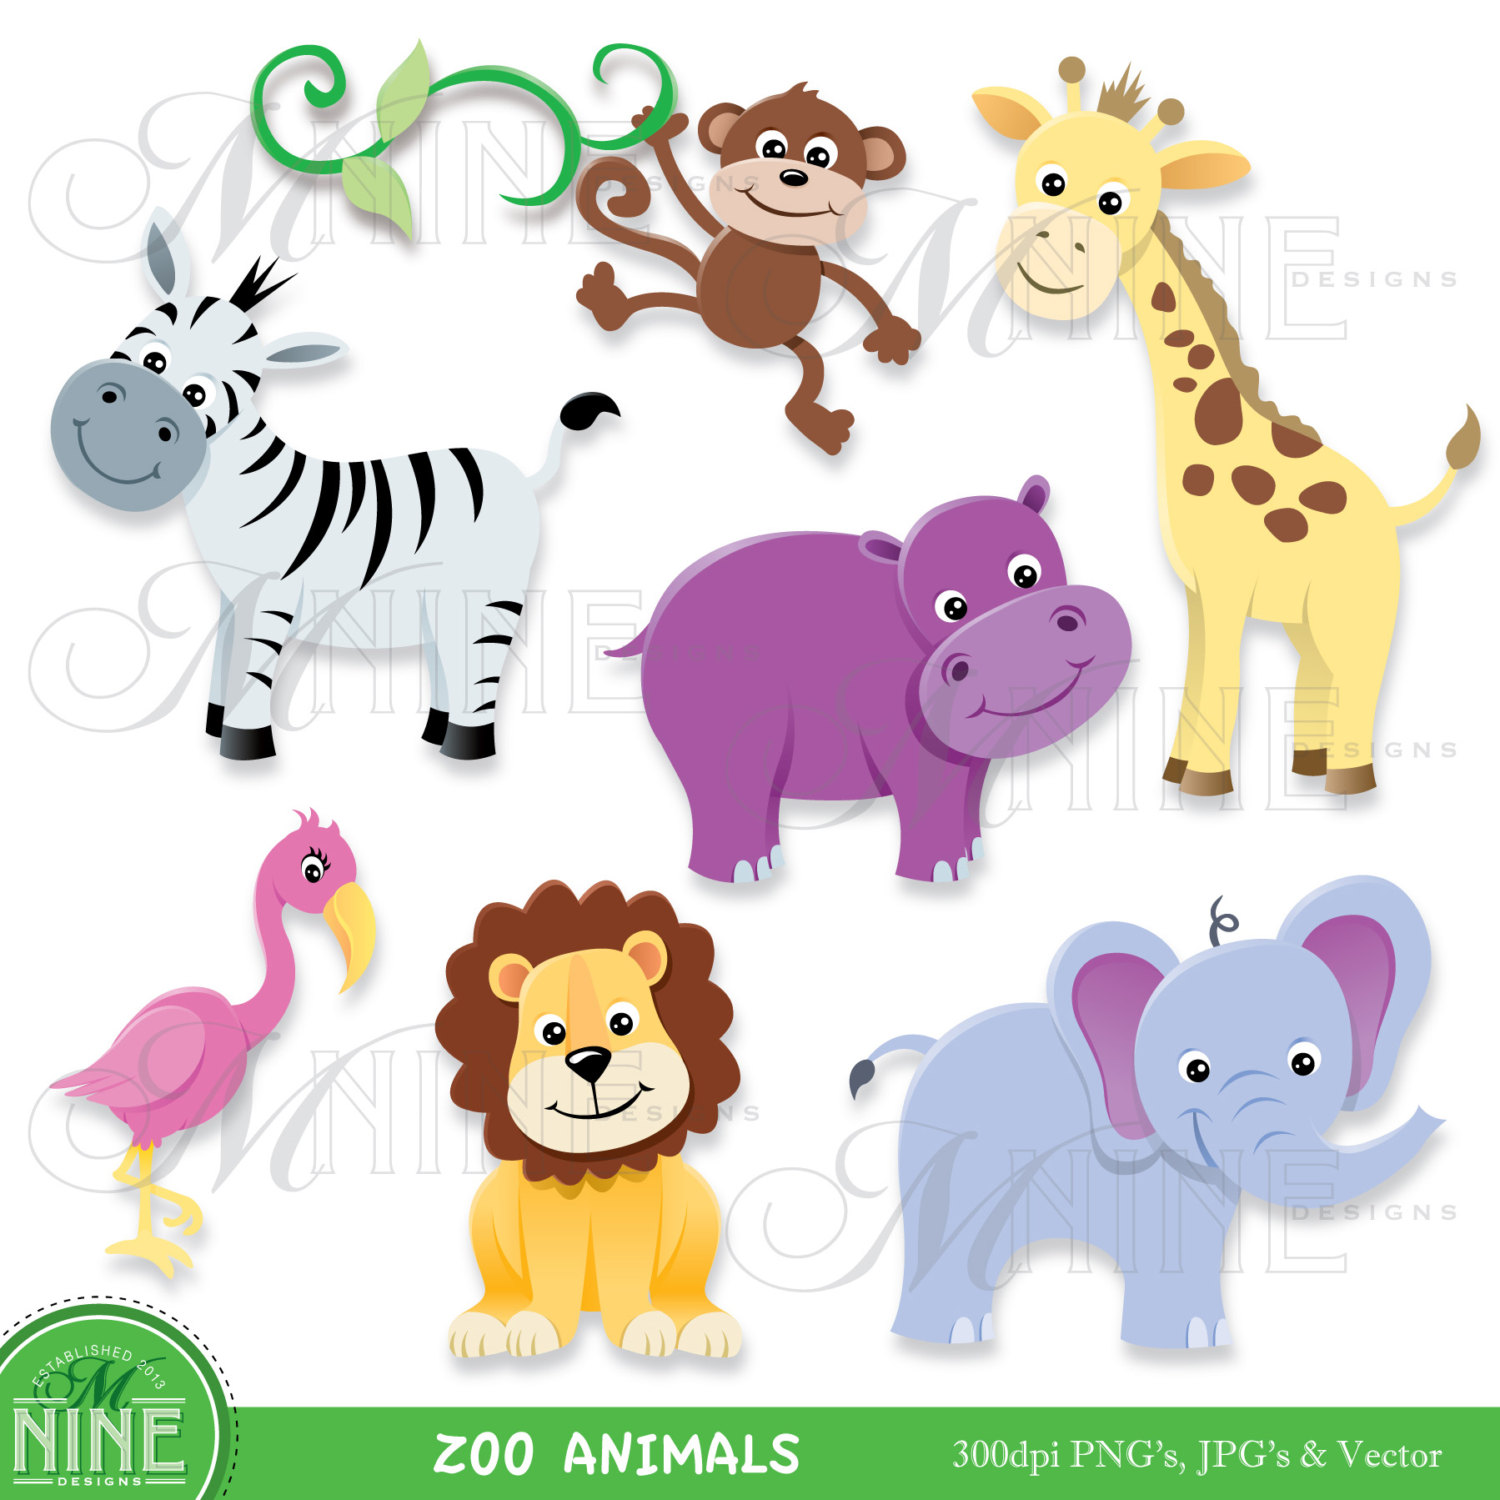 Zoo Animals Clipart Download, Elephant C-Zoo Animals Clipart Download, Elephant Clipart Lion Zebra Monkey Clipart.-11